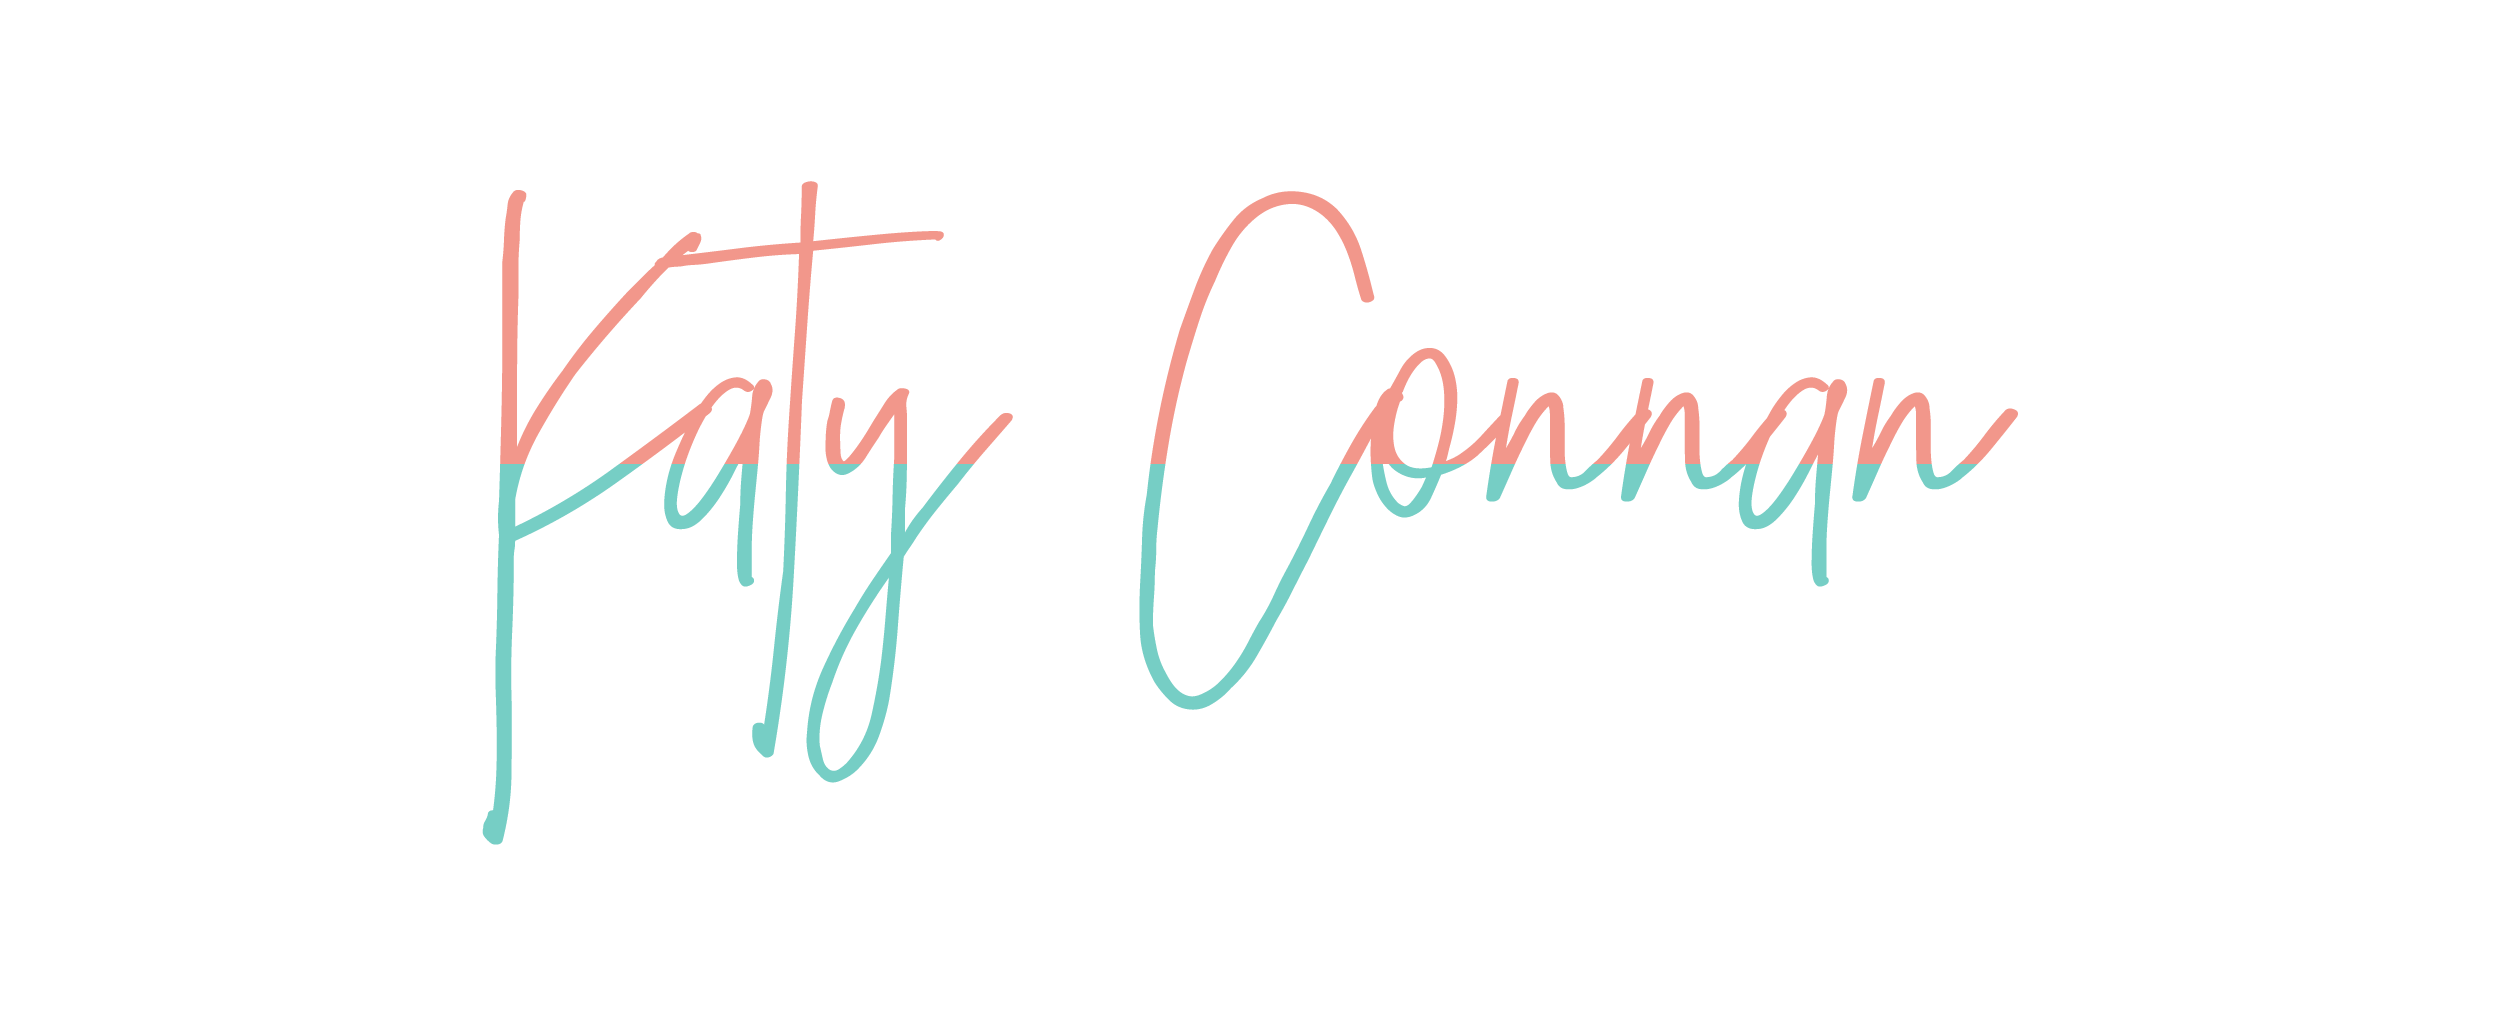 Katy-Connan-Signature (1).png